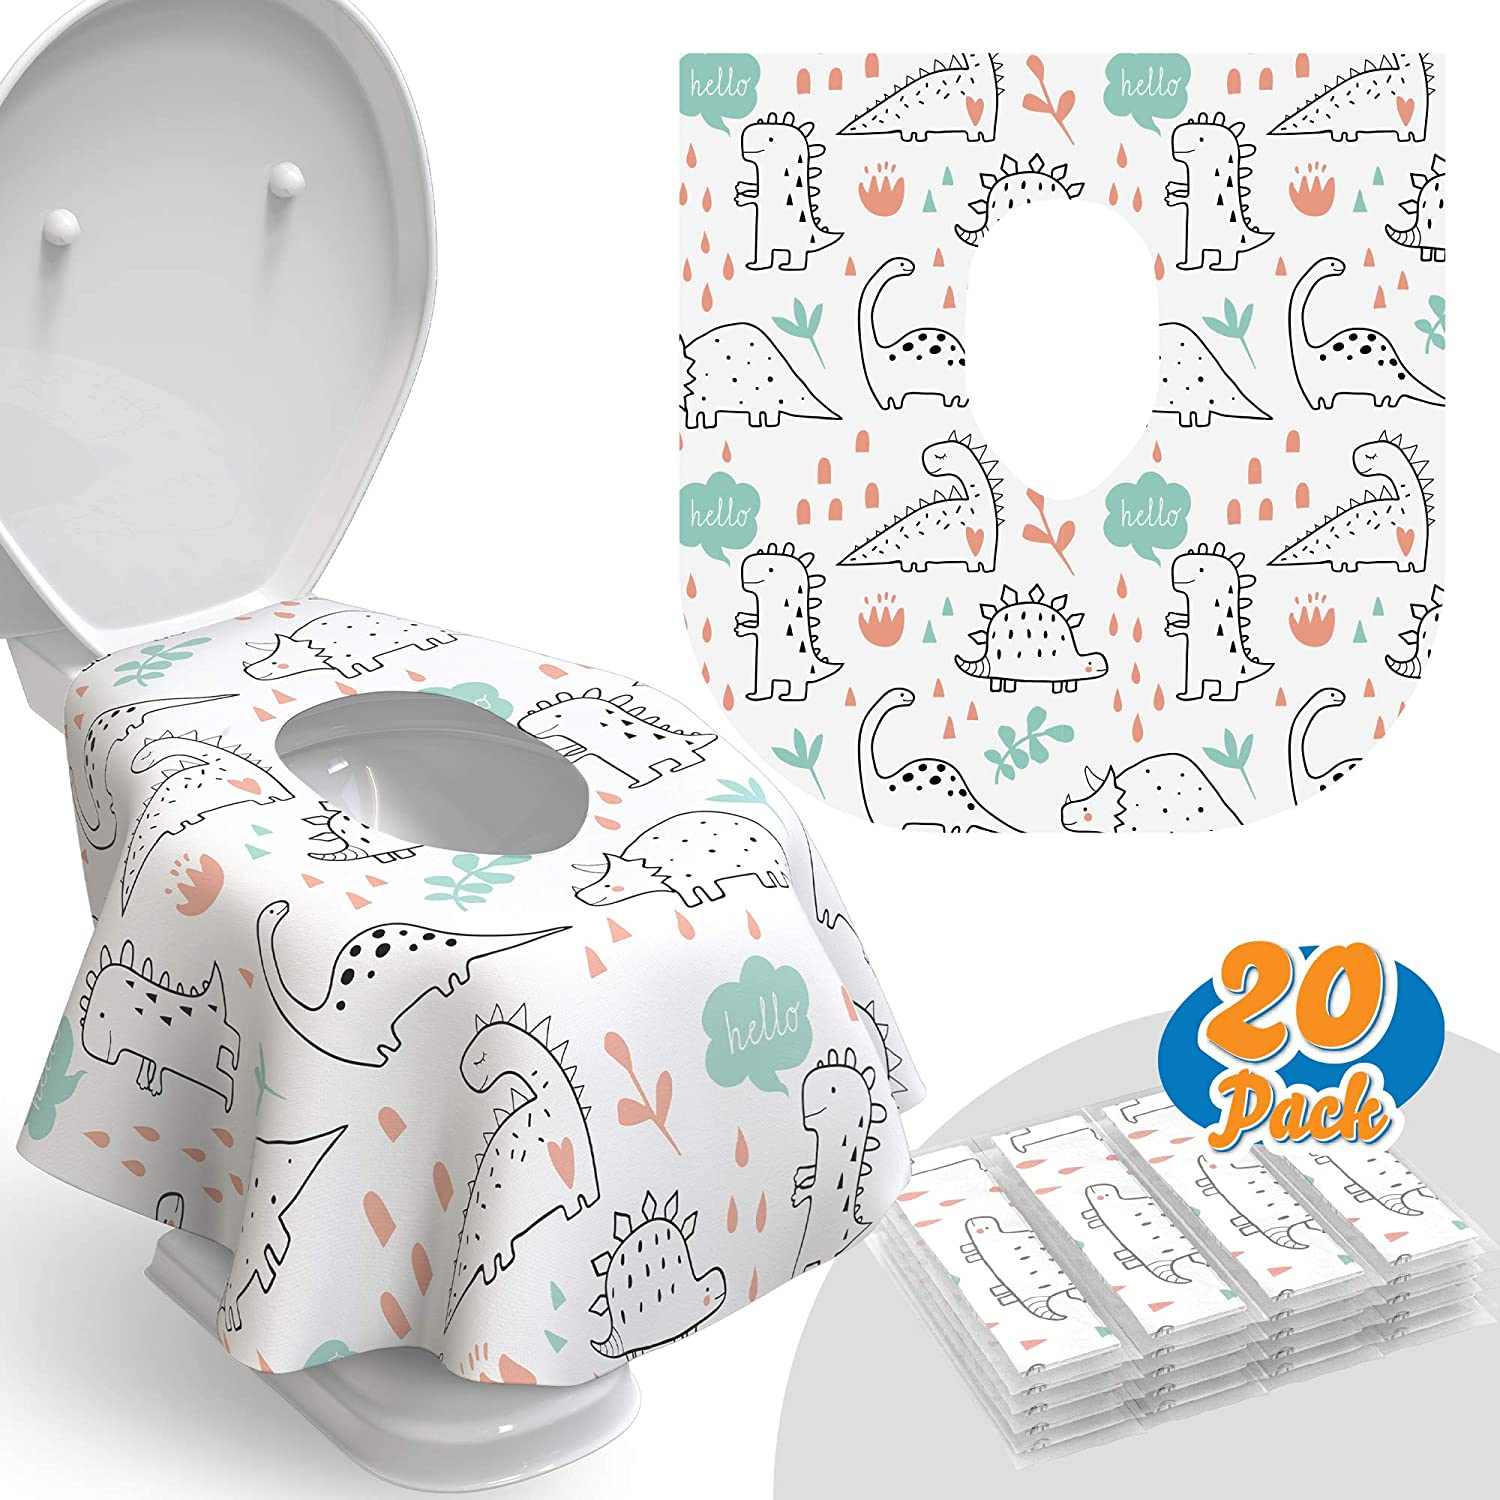 Toilet Seat Be super welcome Covers Disposable - Max 80% OFF for Pack 20 Ideal Waterproof